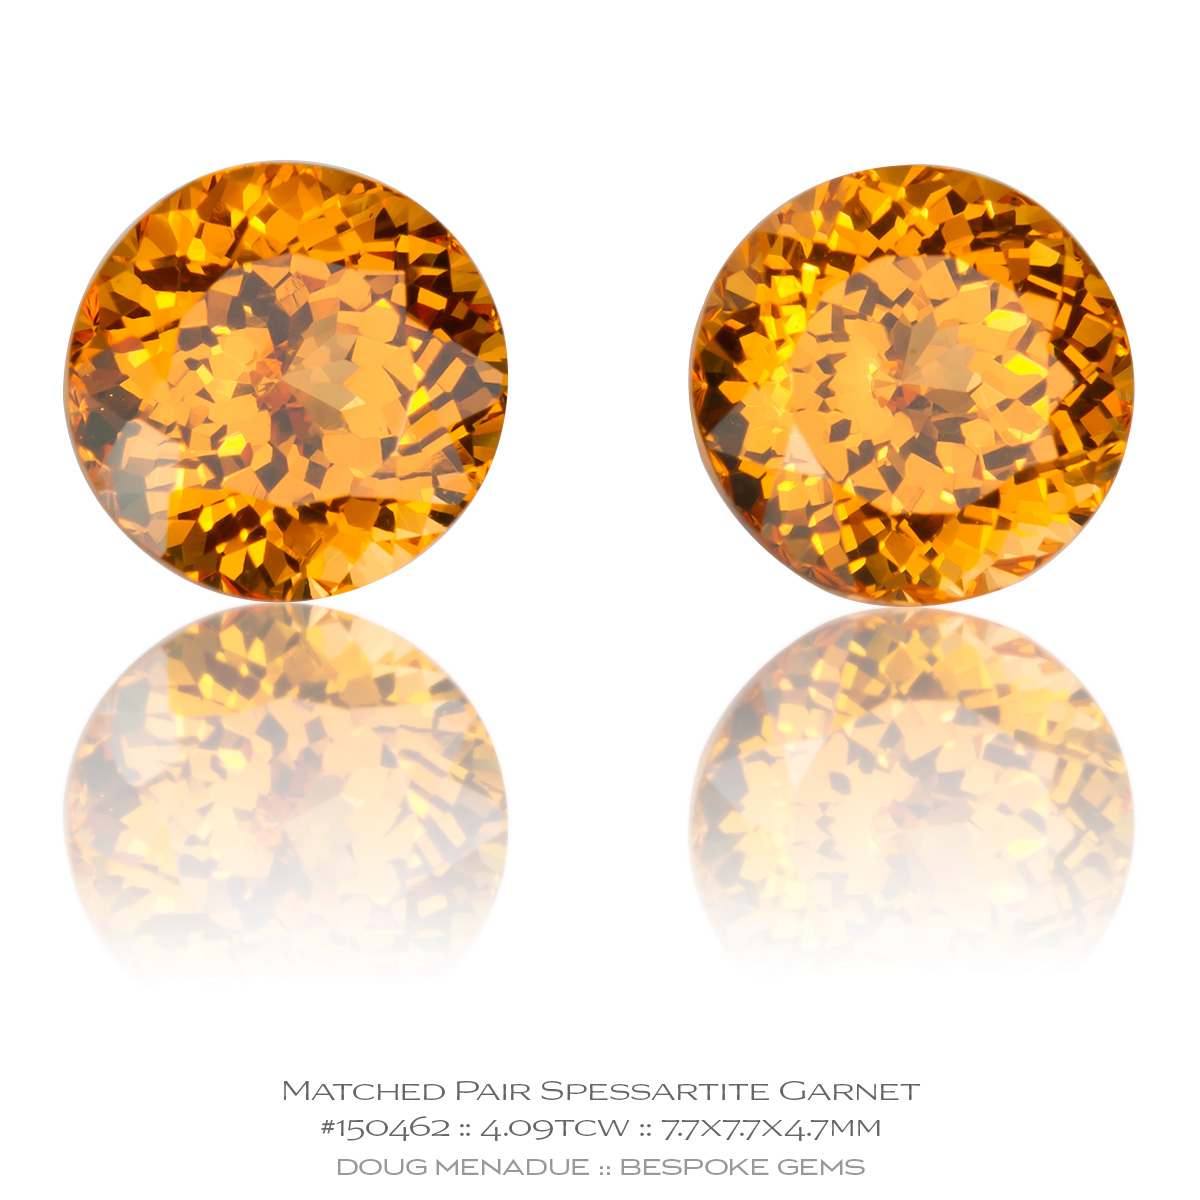 #150462, Orange Spessartite Garnet, Round Brilliant Matched Pair, 4.09 Carats, 13.16X13.11X10.41mm - Doug Menadue :: Bespoke Gems - WWW.BESPOKE-GEMS.COM - Precision Gemcutting and Lapidary Services In Sydney Australia